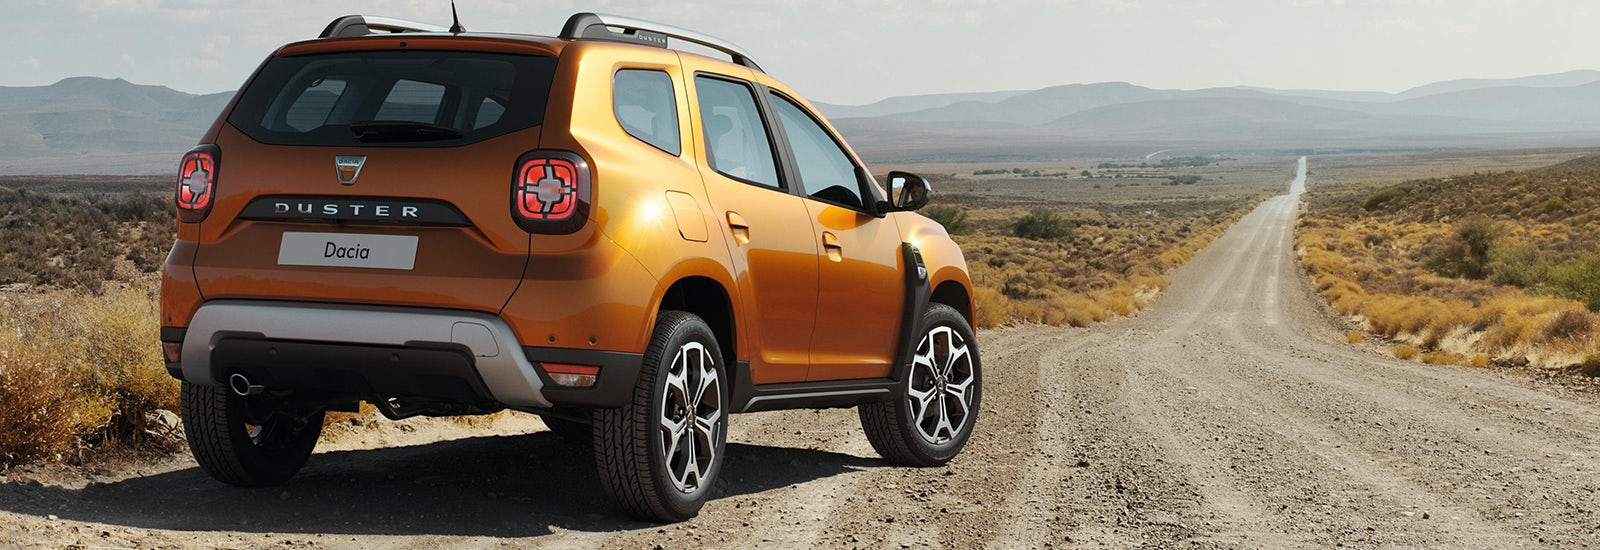 2018 dacia duster price specs and release date carwow. Black Bedroom Furniture Sets. Home Design Ideas